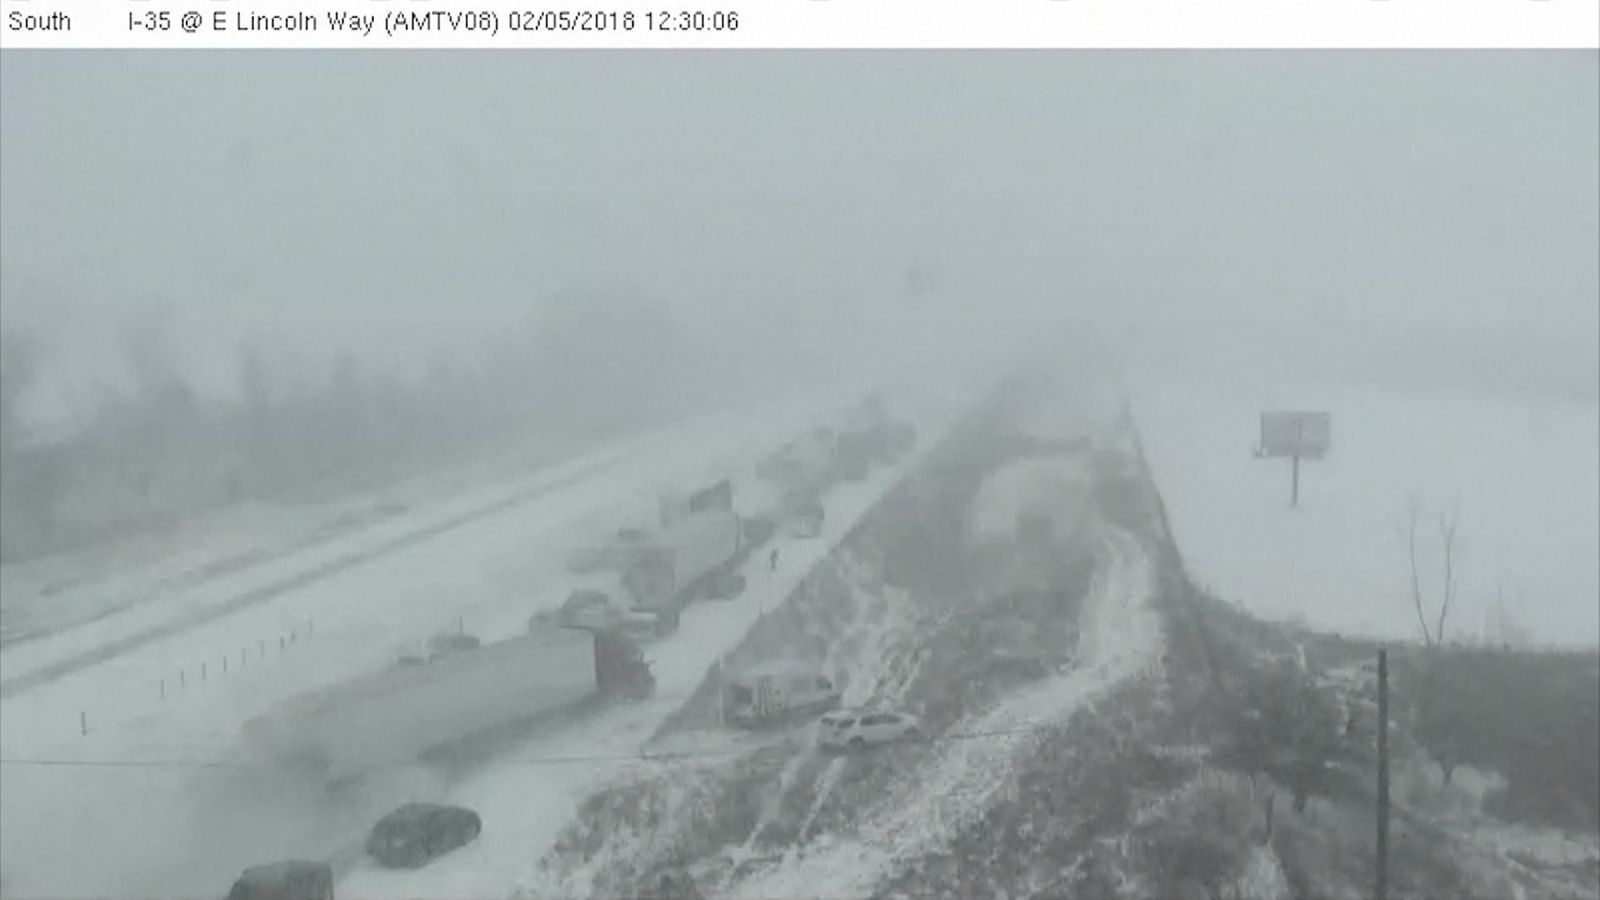 One person dies and up to 70 vehicles are involved in the accident on the  snow-covered interstate